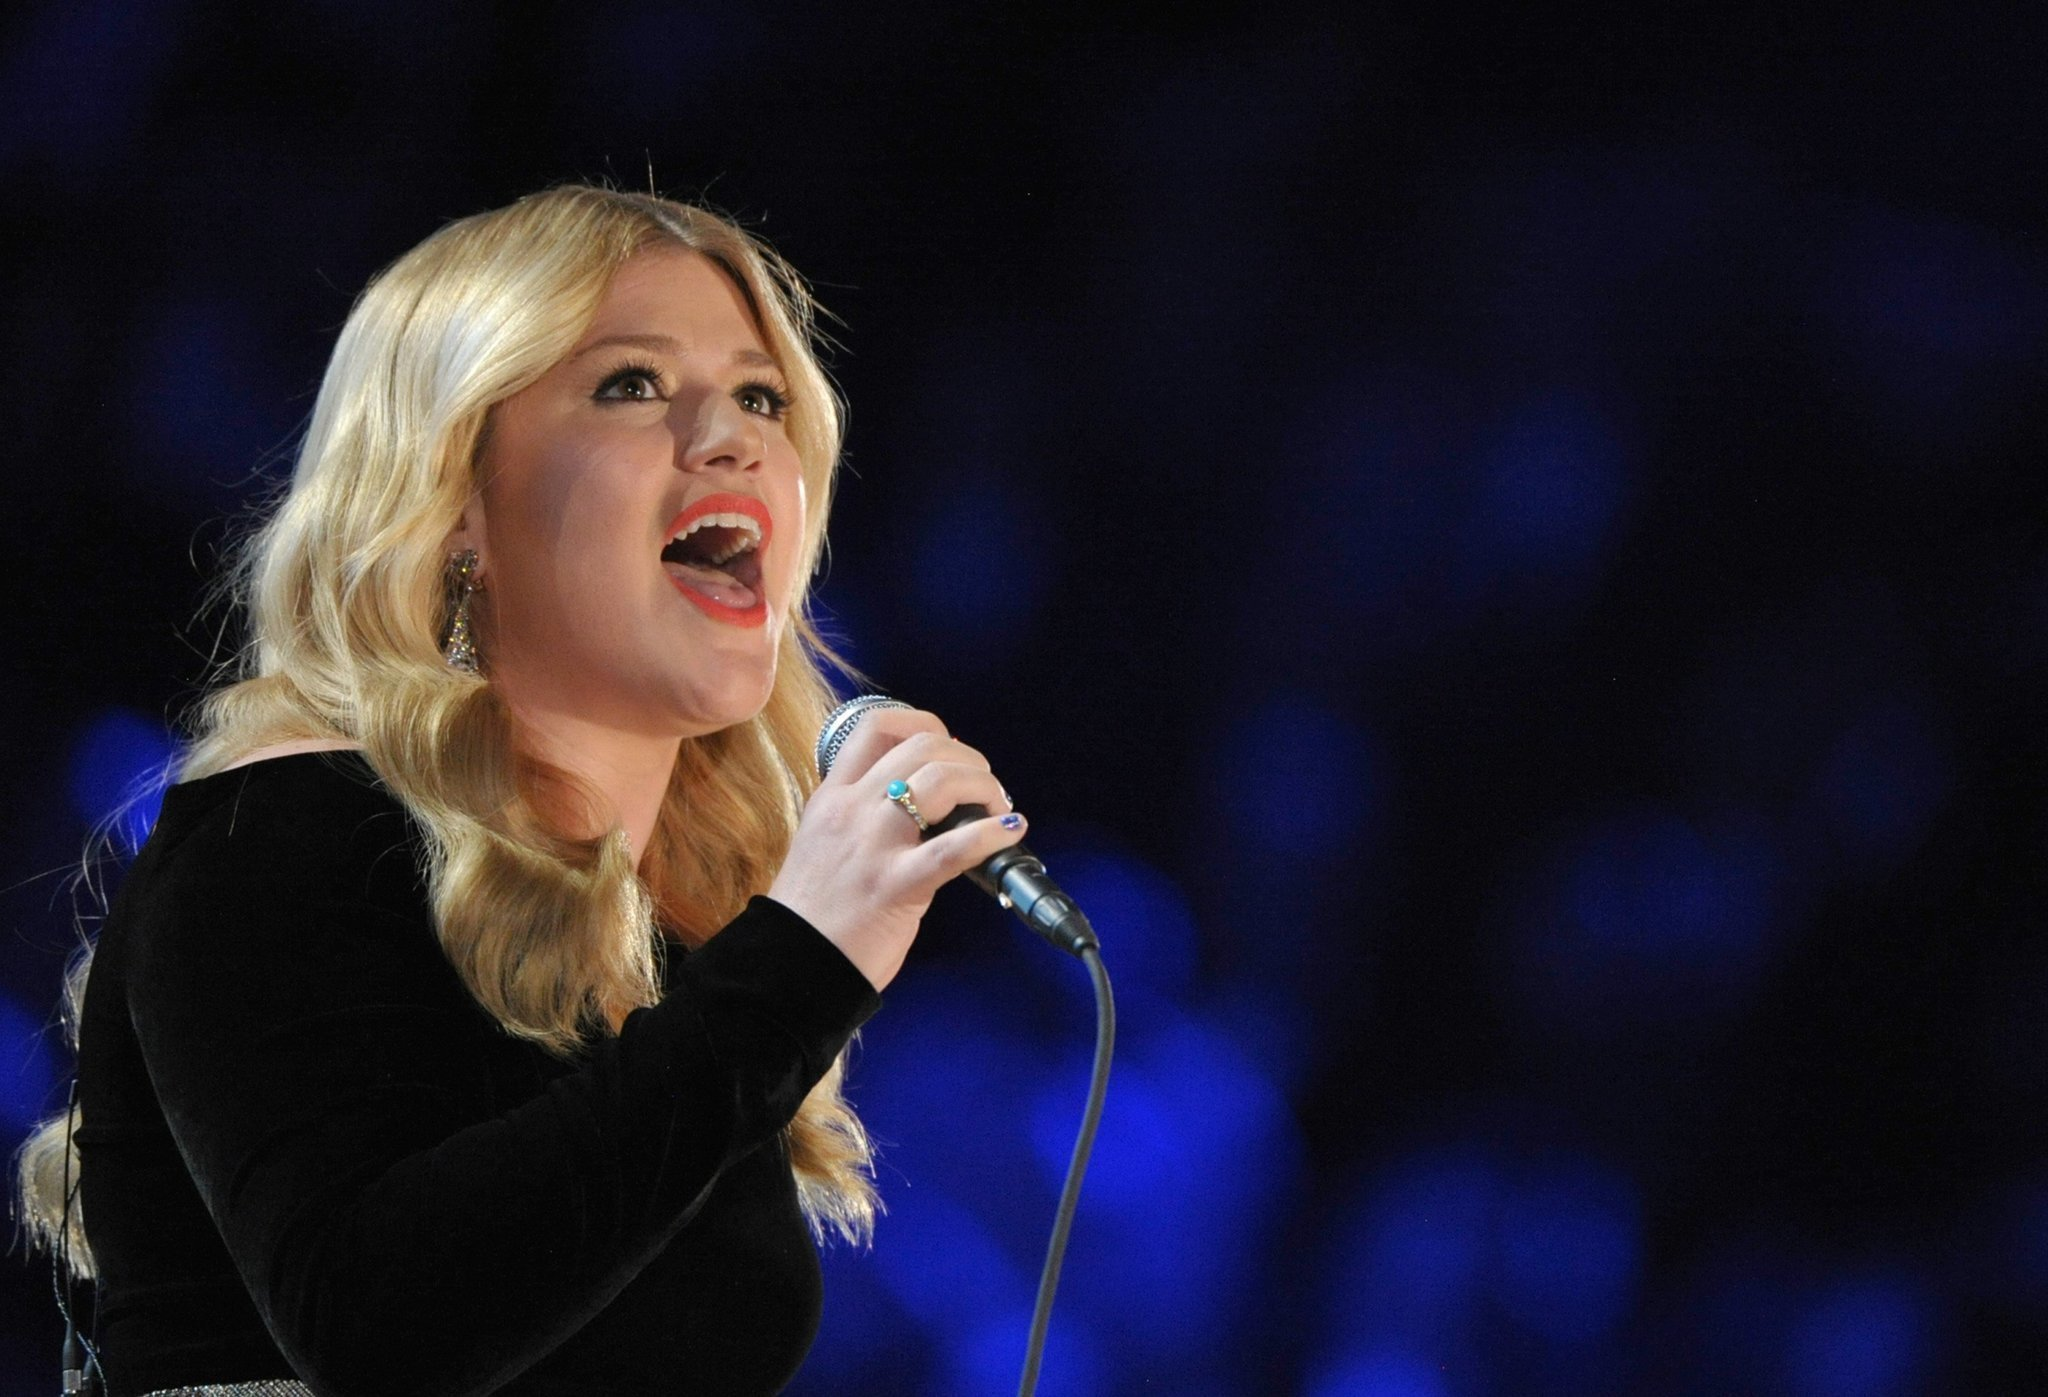 Kelly Clarkson adds new stars to Christmas special - The San Diego ...